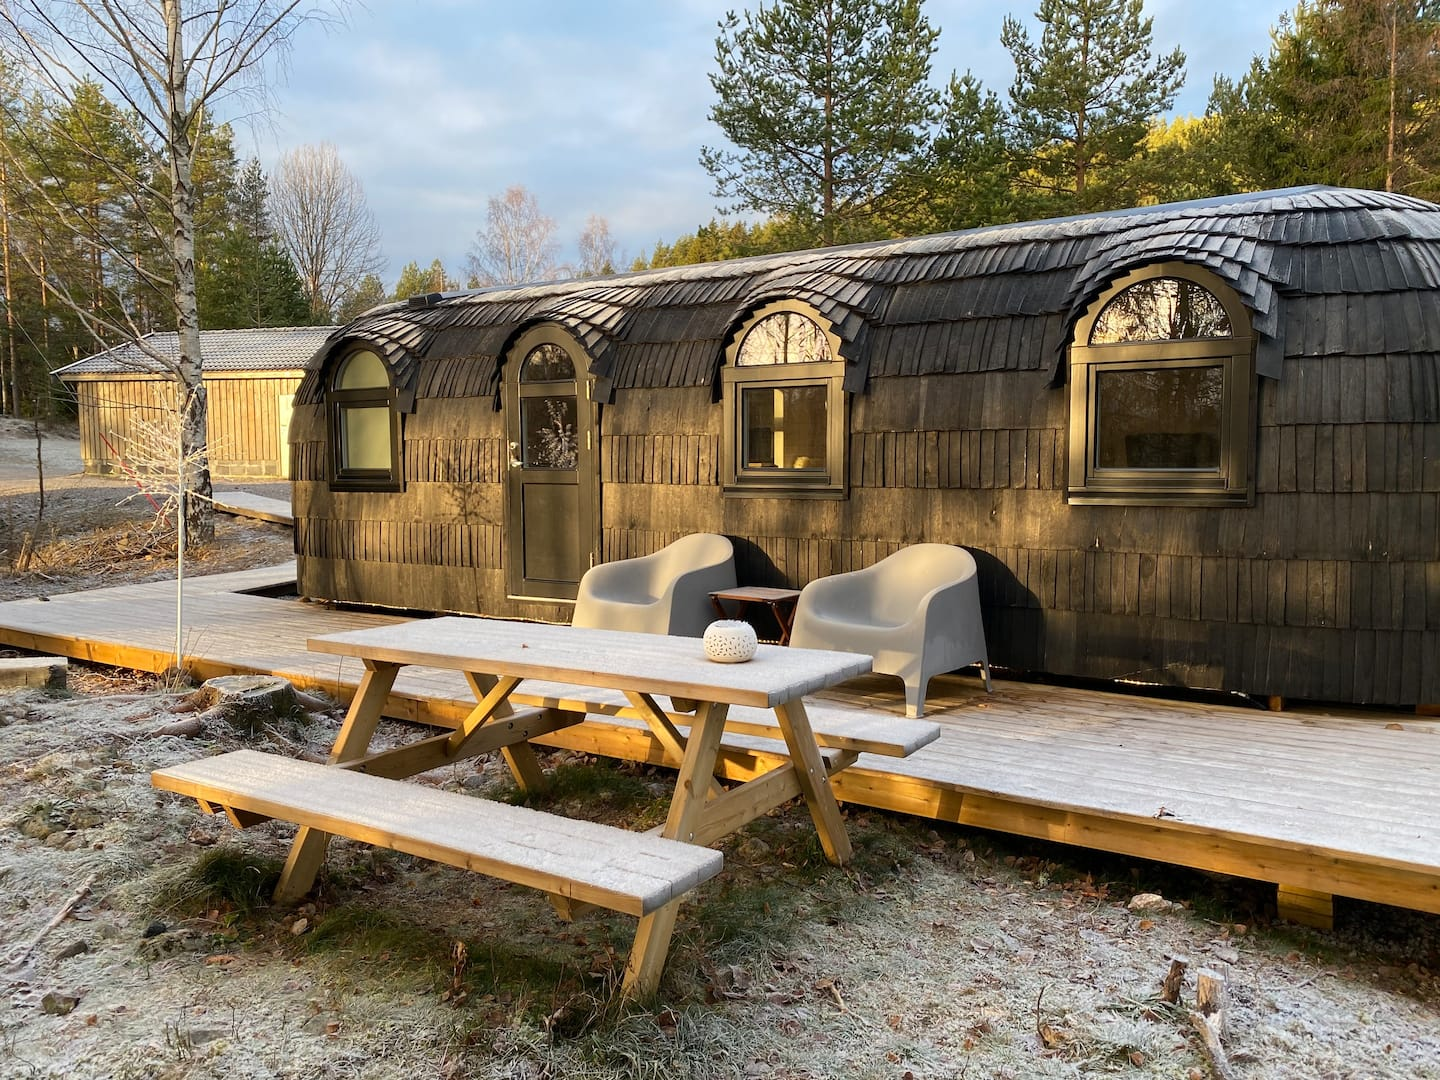 Hobbithus Tiny Home Airbnb in Norway